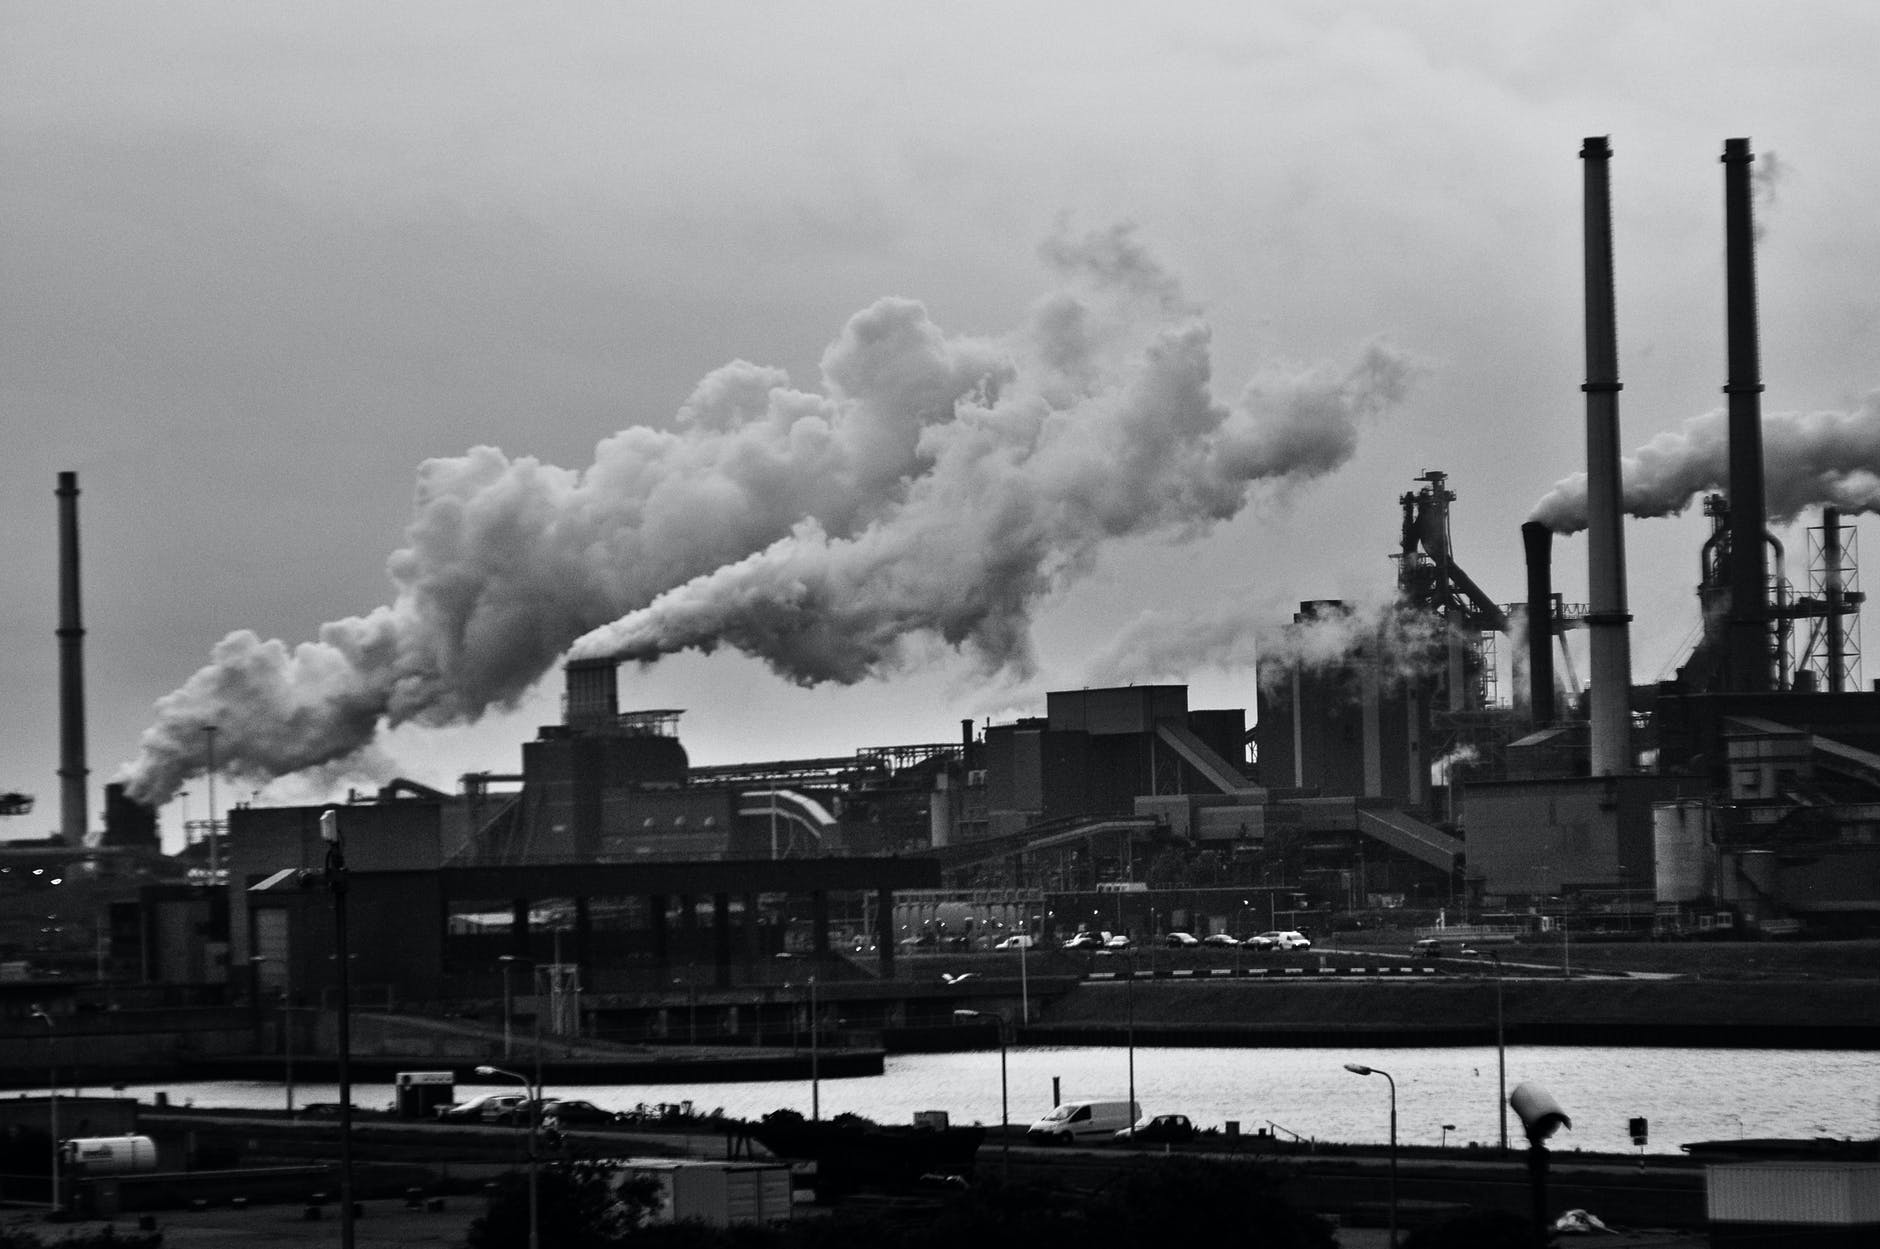 grayscale photography of locomotive train beside factory